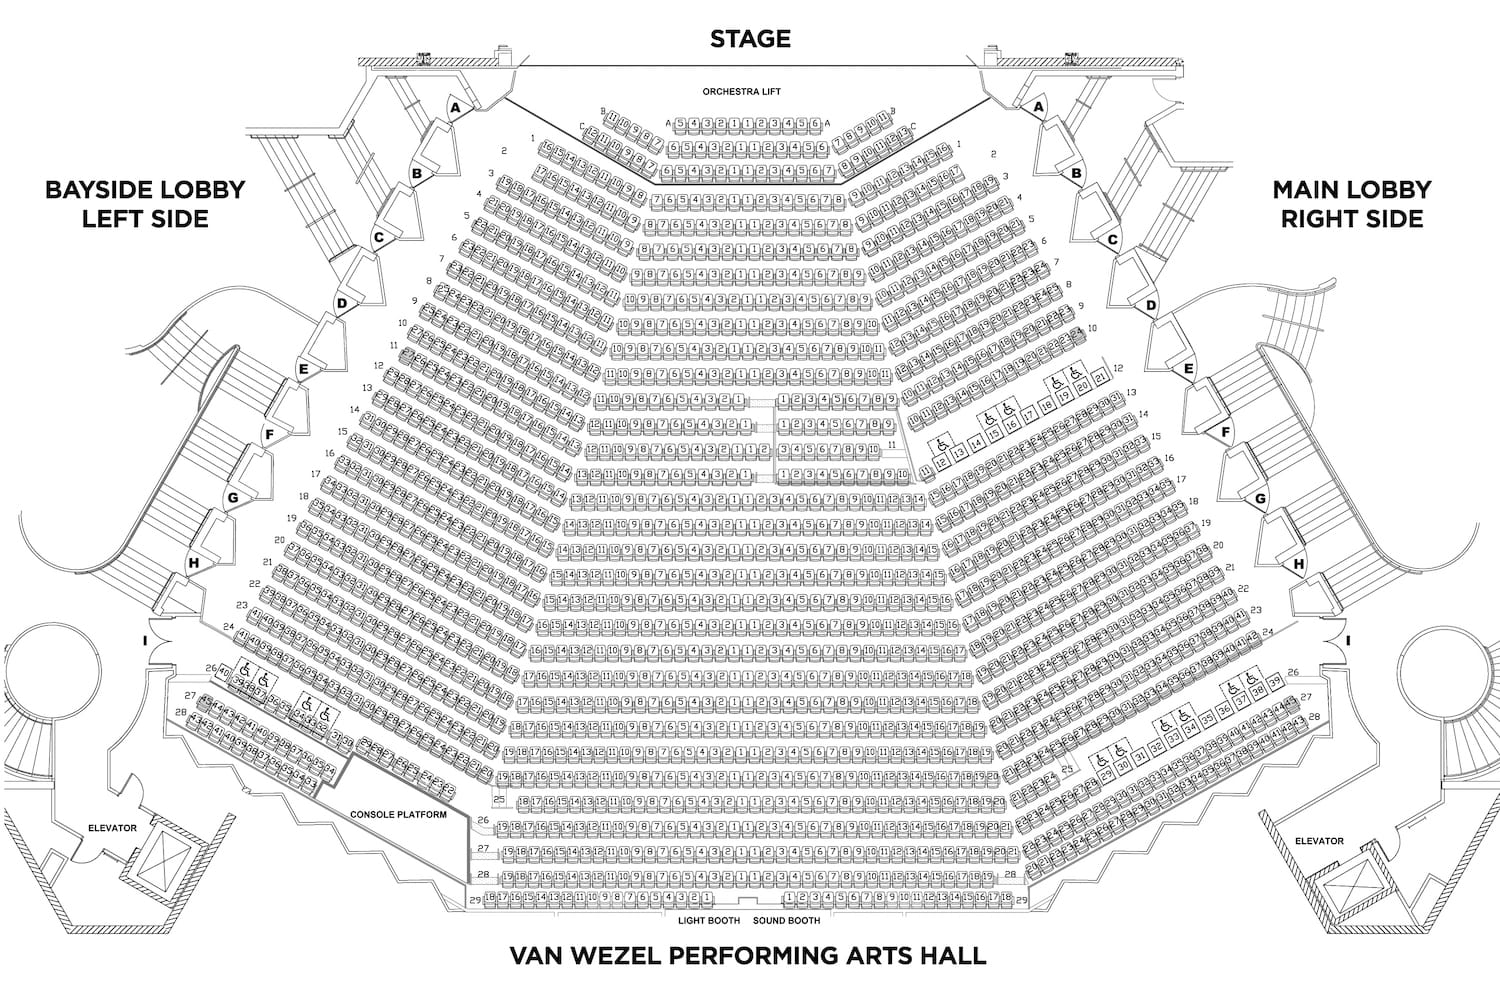 Sarasota, Florida - Van Wezel Performing Arts Hall